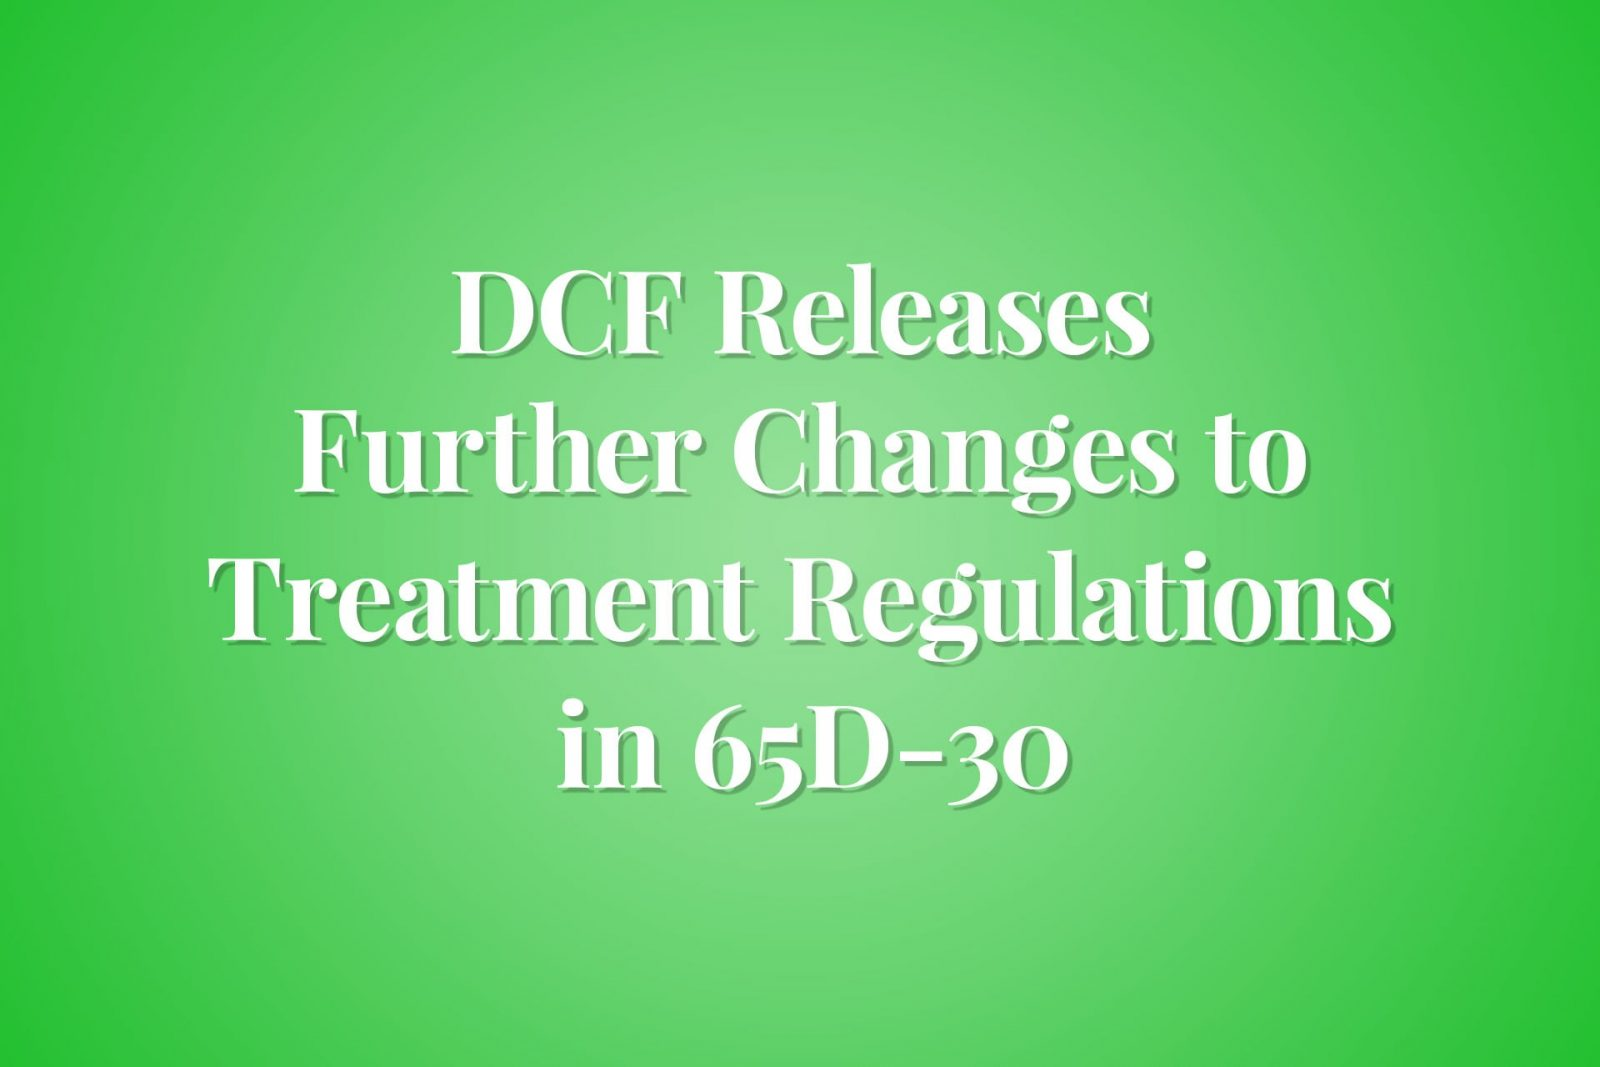 DCF Releases Further Changes to Treatment Regulations in 65D-30